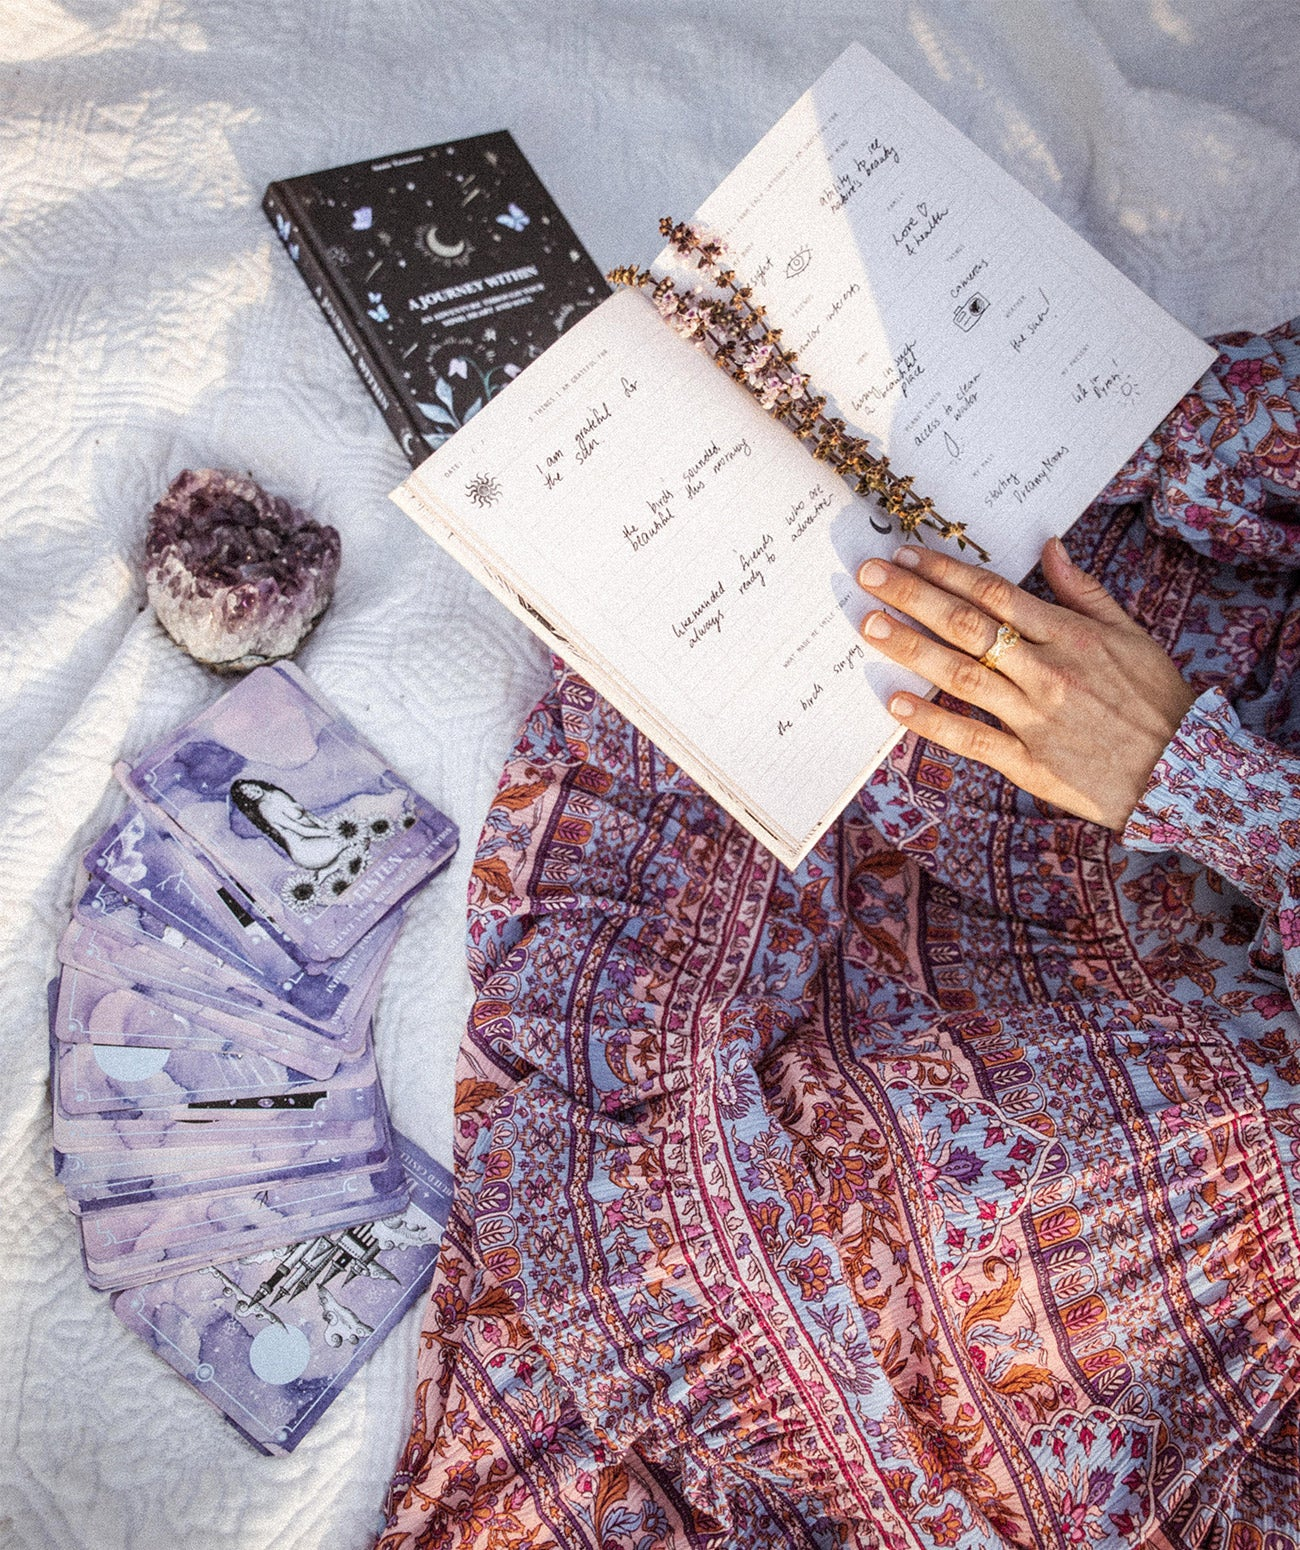 Meet Artist & Muse Annie Tarasova on the blog at Arnhem talking about moon cycles and wellbeing